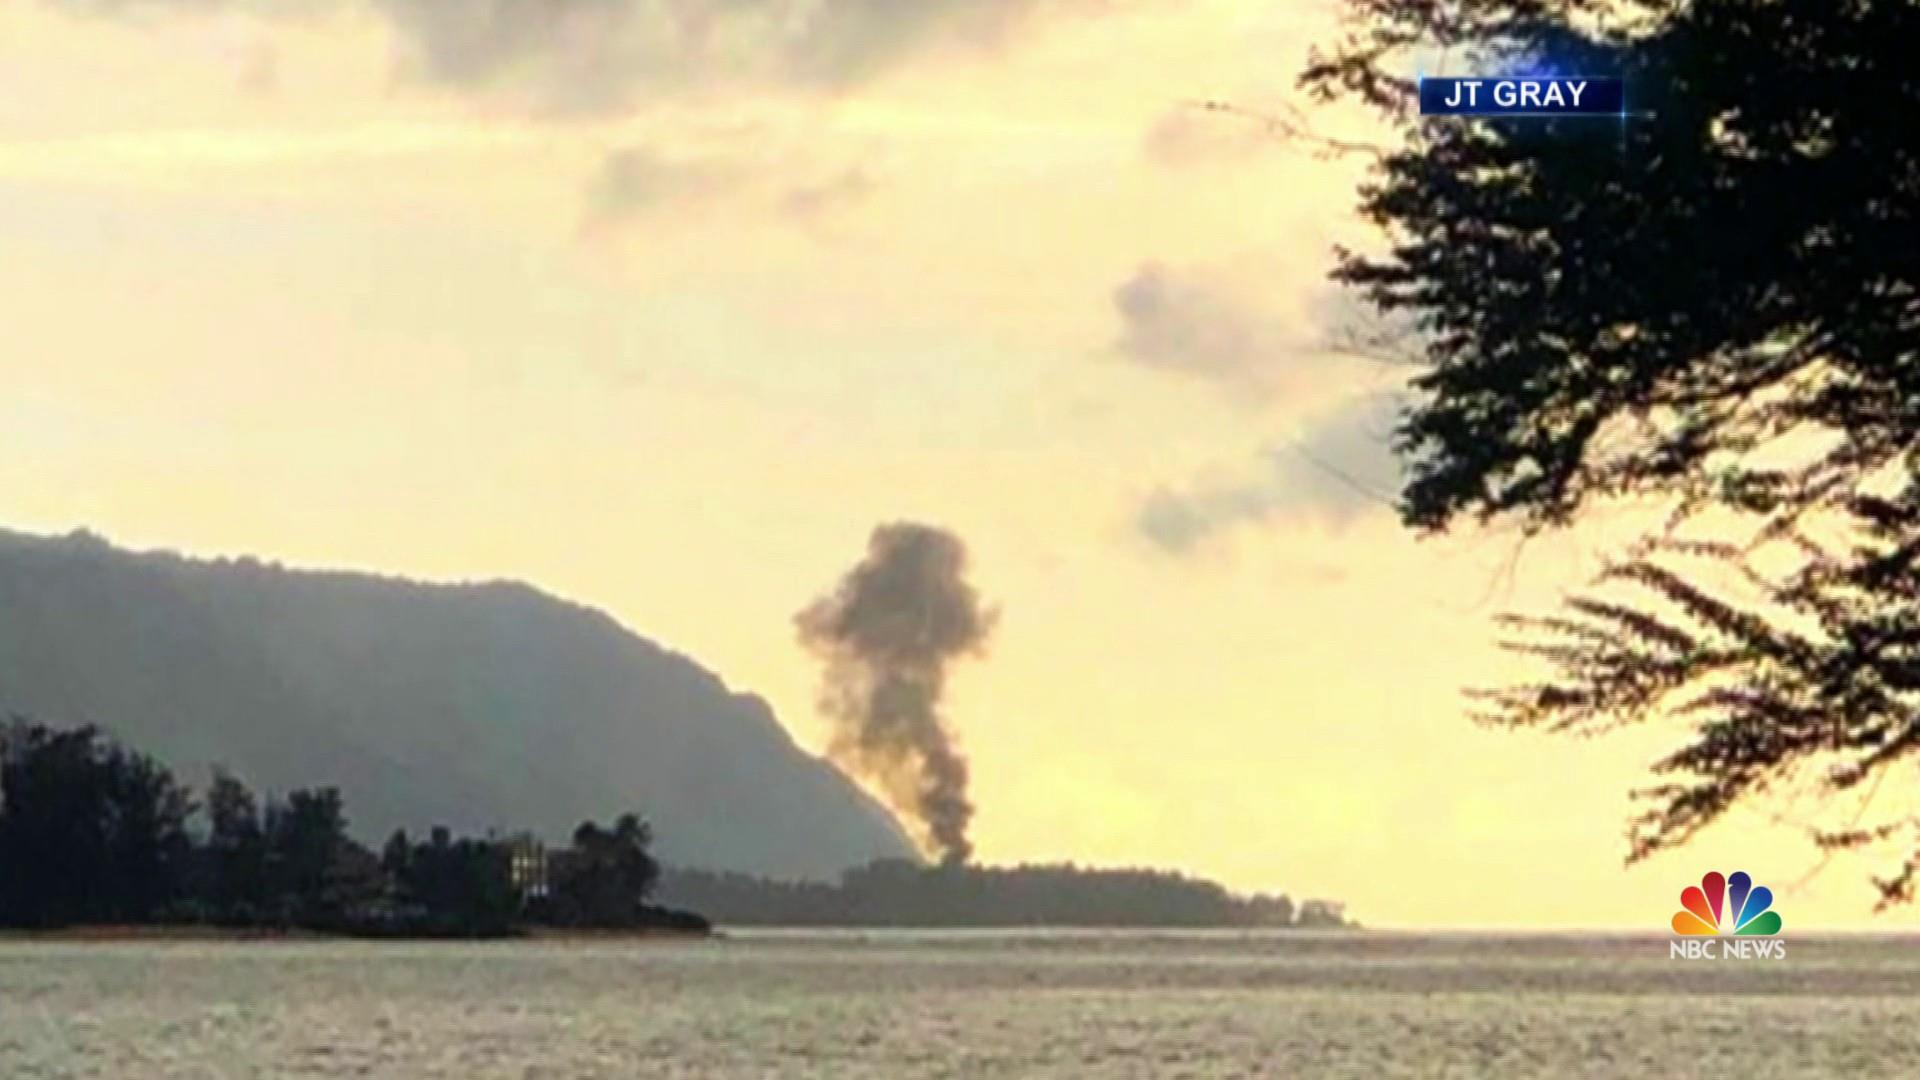 What we know about the deadly Hawaii skydiving plane crash